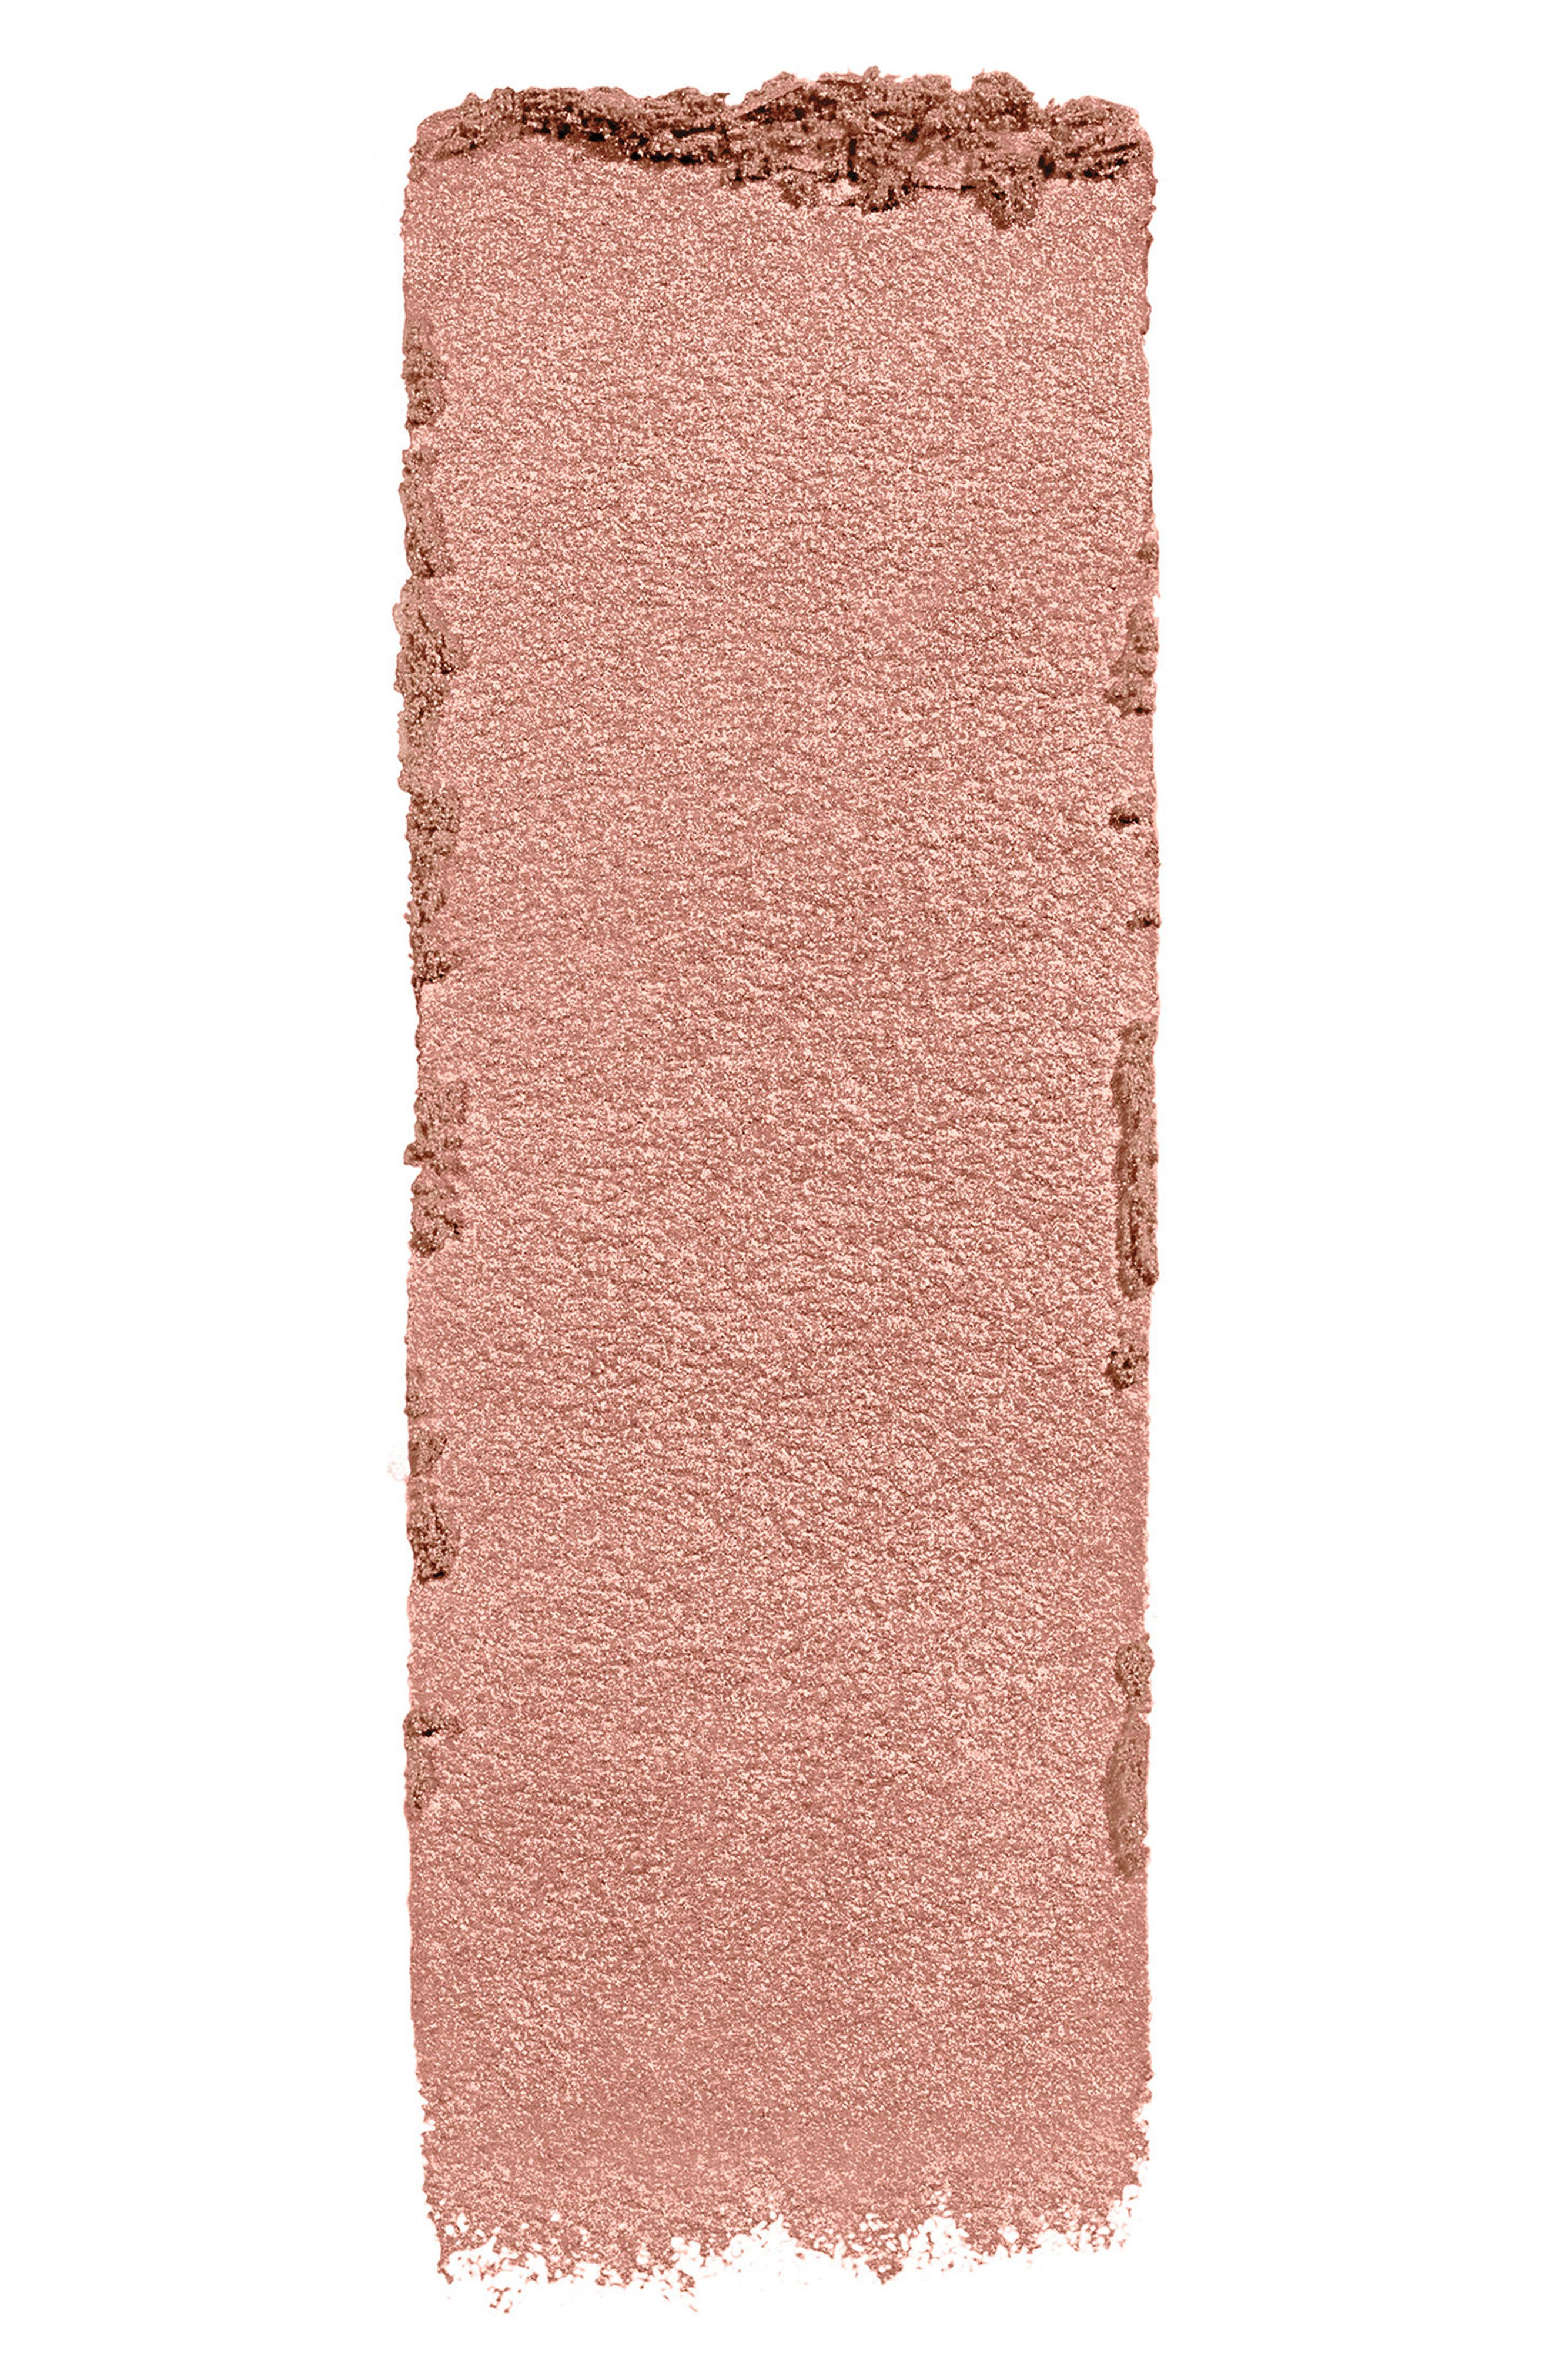 NARSissist Wanted Cheek Palette II,                             Alternate thumbnail 8, color,                             MEDIUM TO DARK